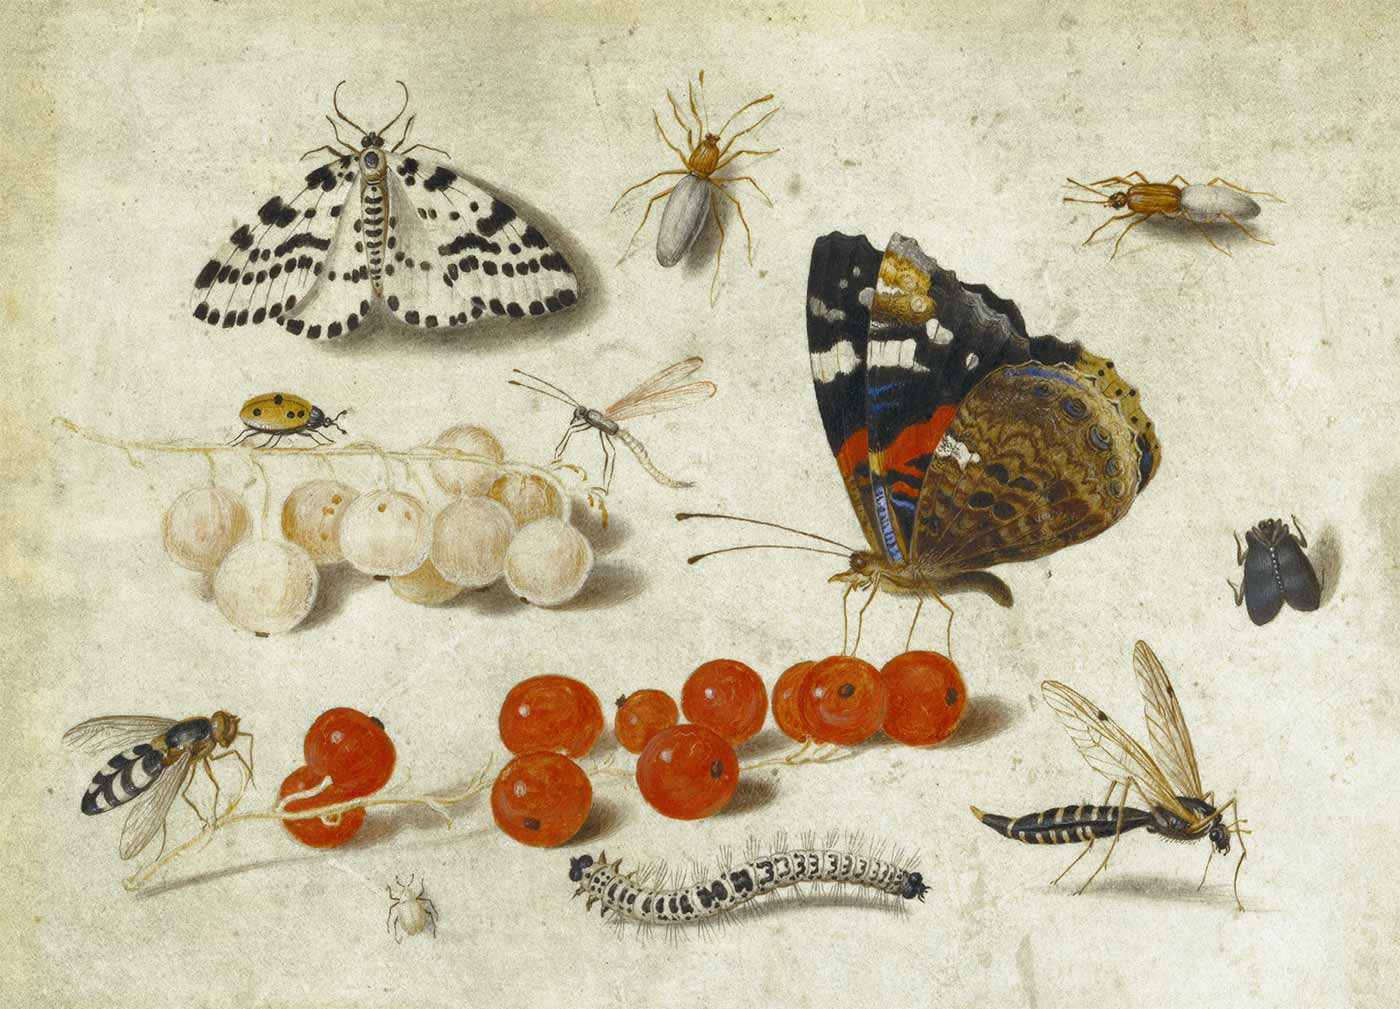 Butterfly, Caterpillar, Moth, Insects, and Currants; Jan van Kessel II